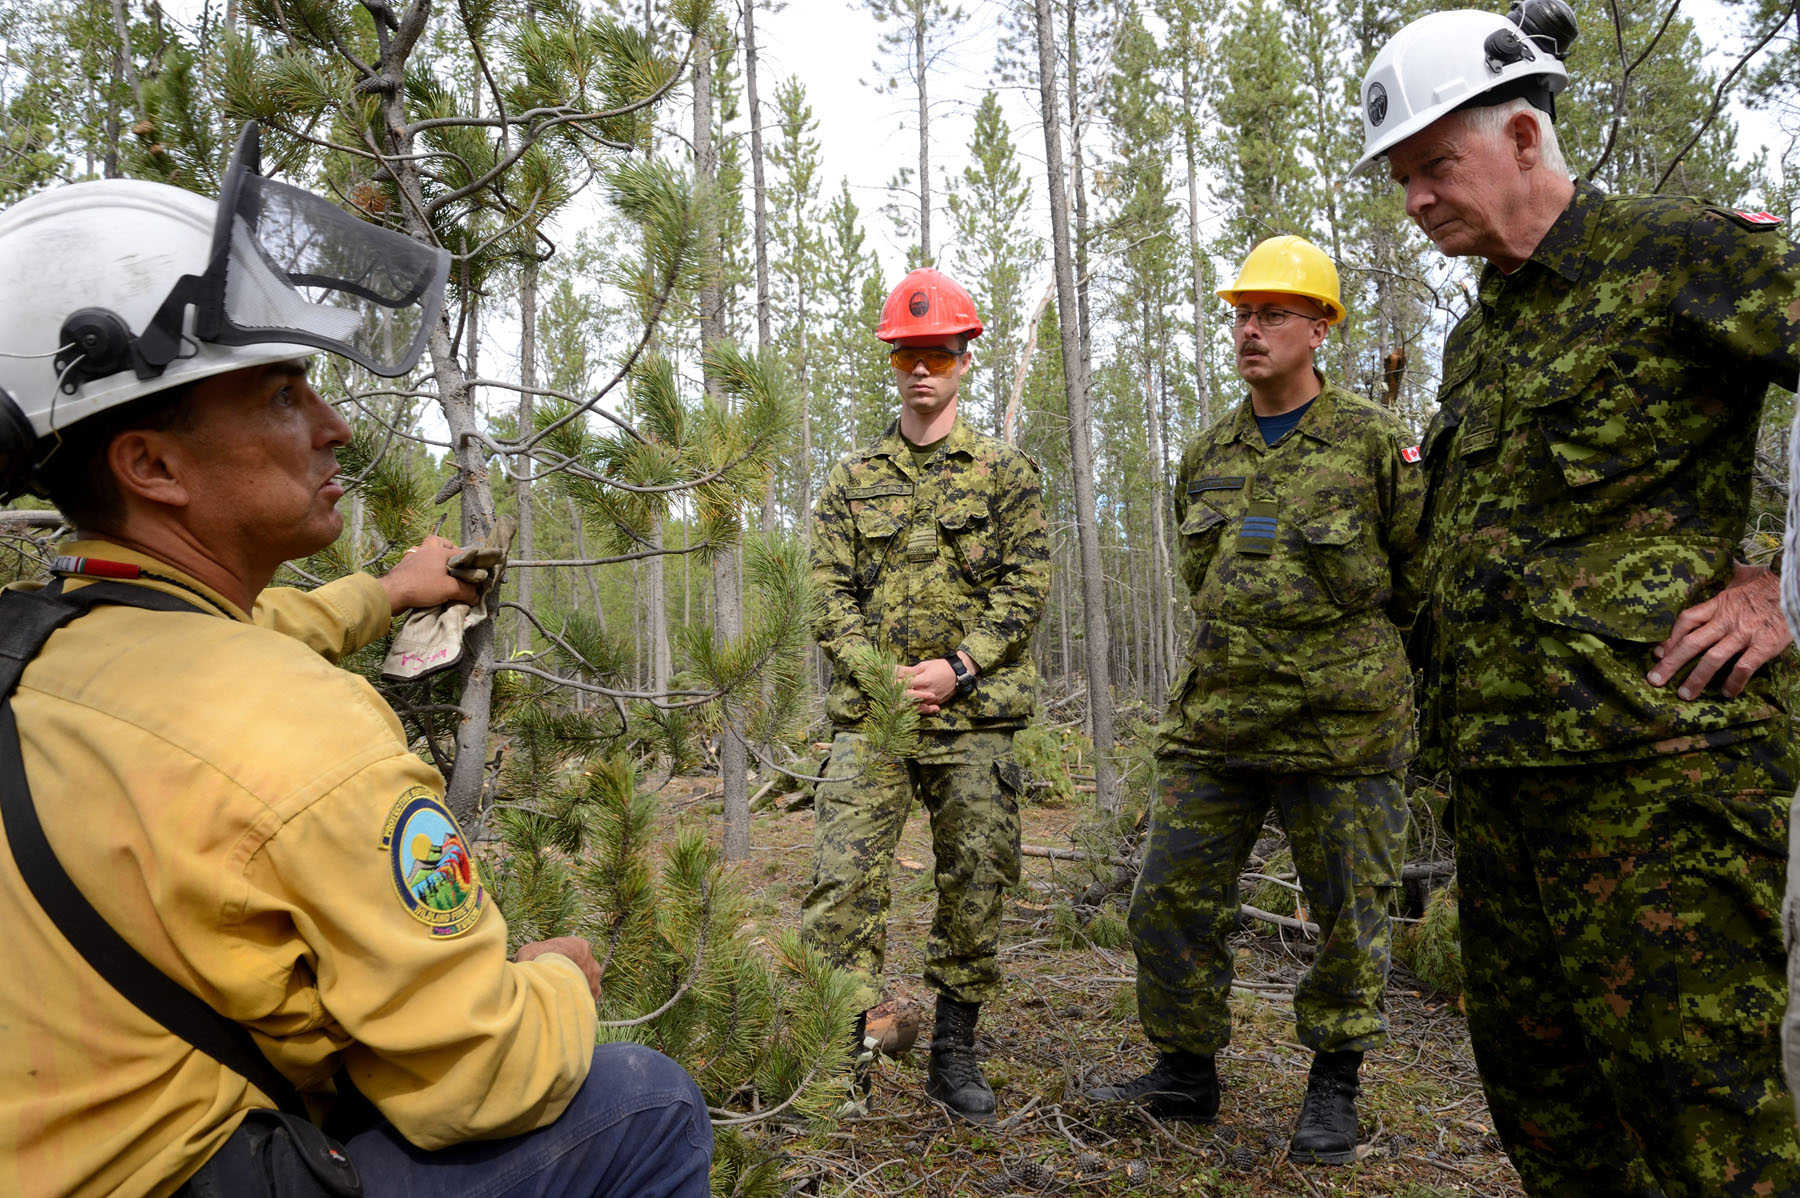 At McLean Lake Road, the Governor General viewed fuel break operations.